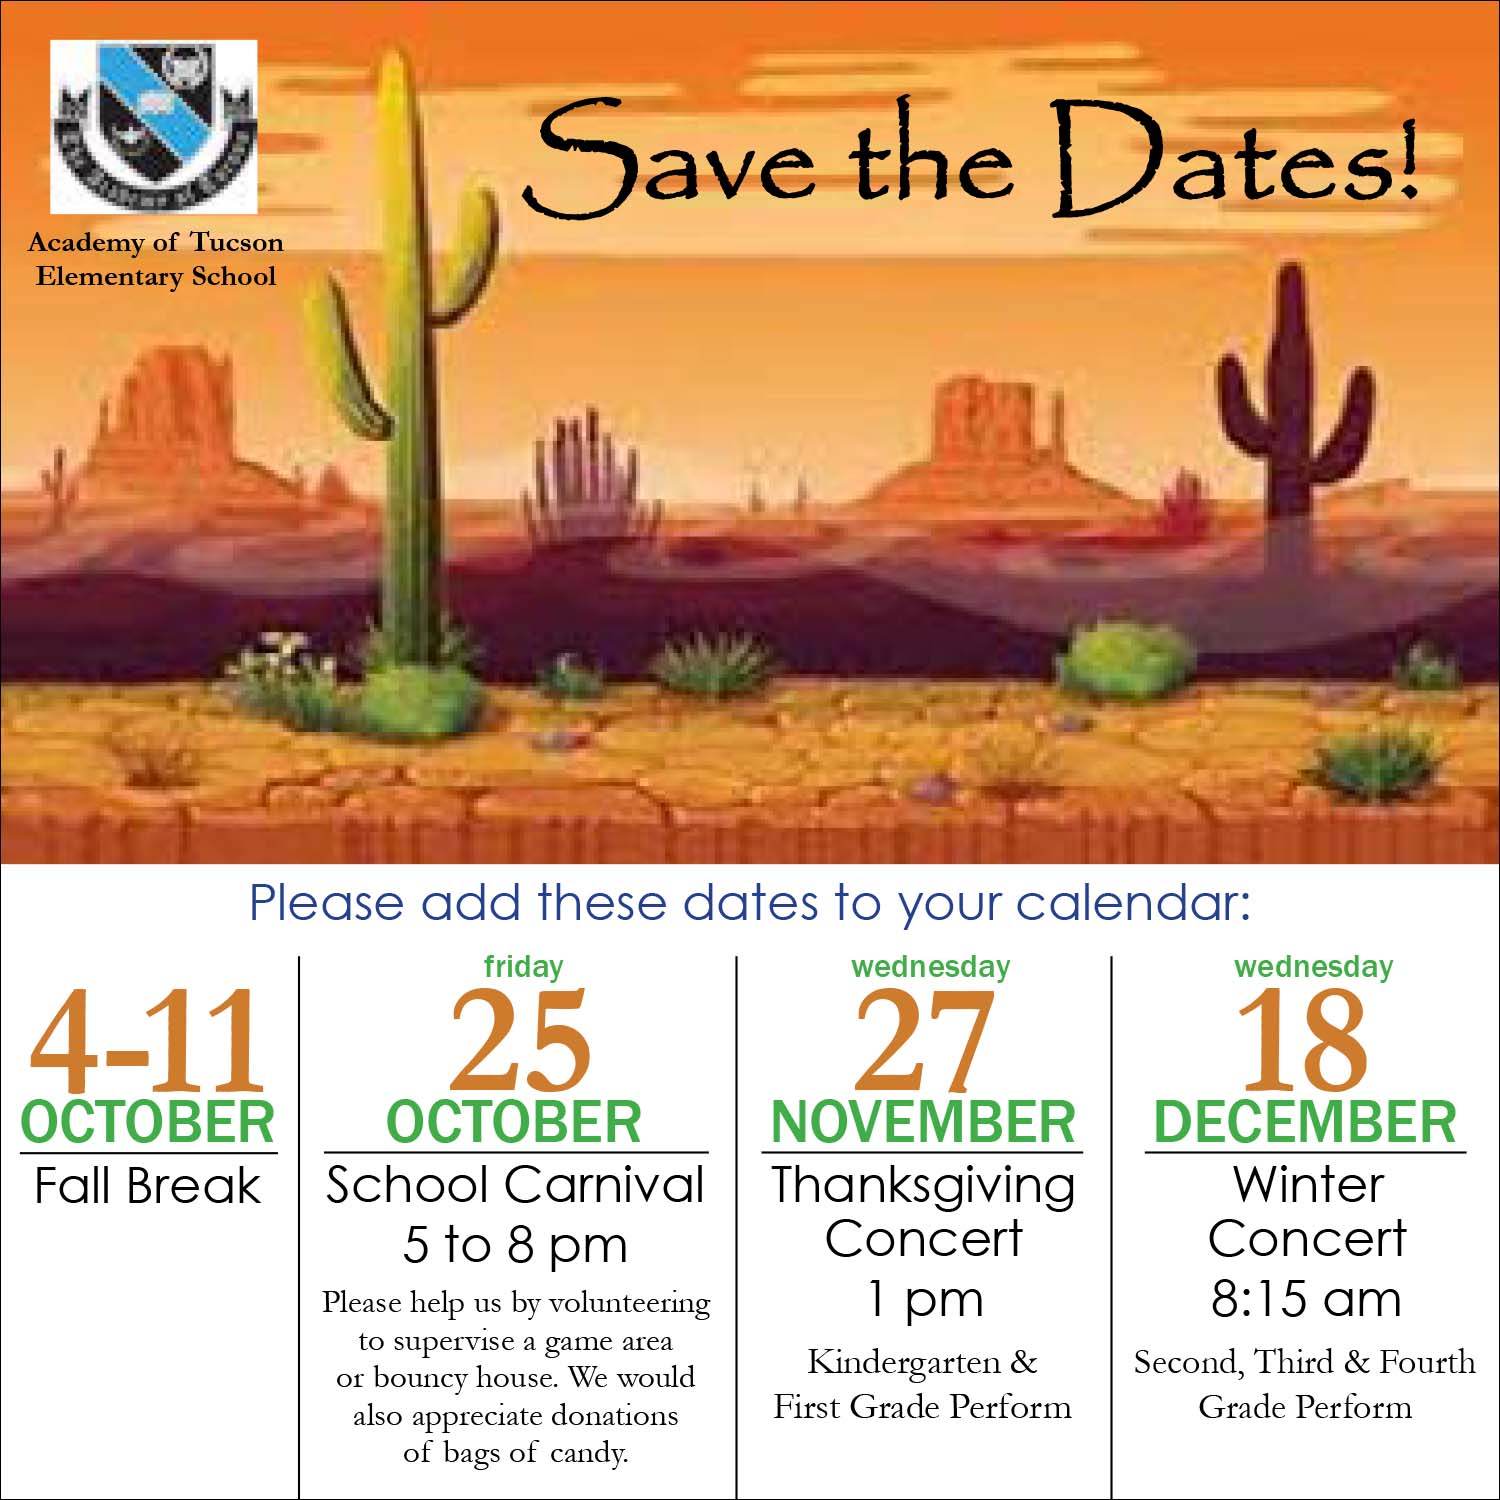 AOT Elementary School Save the Dates Flyer. Link to RTF format is located above this image.